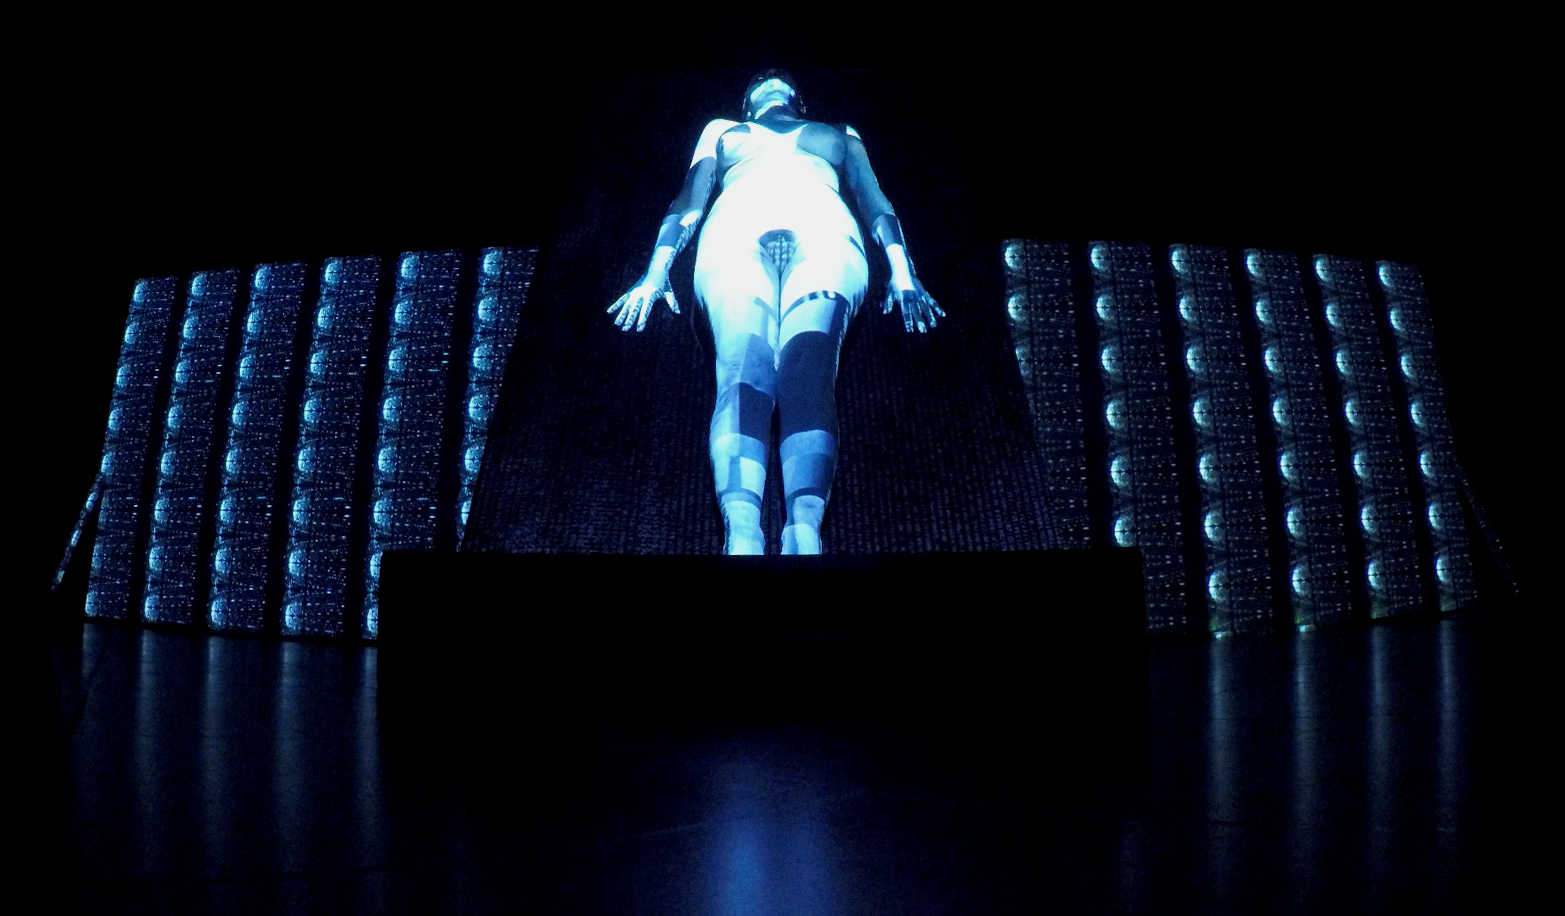 BodyQuake, a still image from the performance, 3